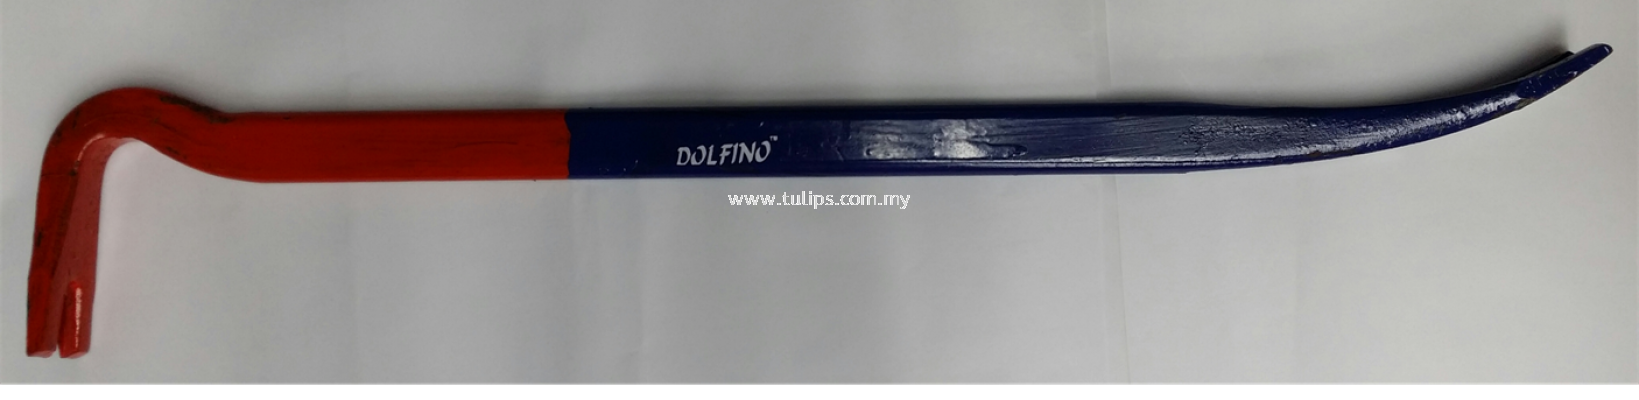 Dolfino Heavy Duty Wrecking Bar